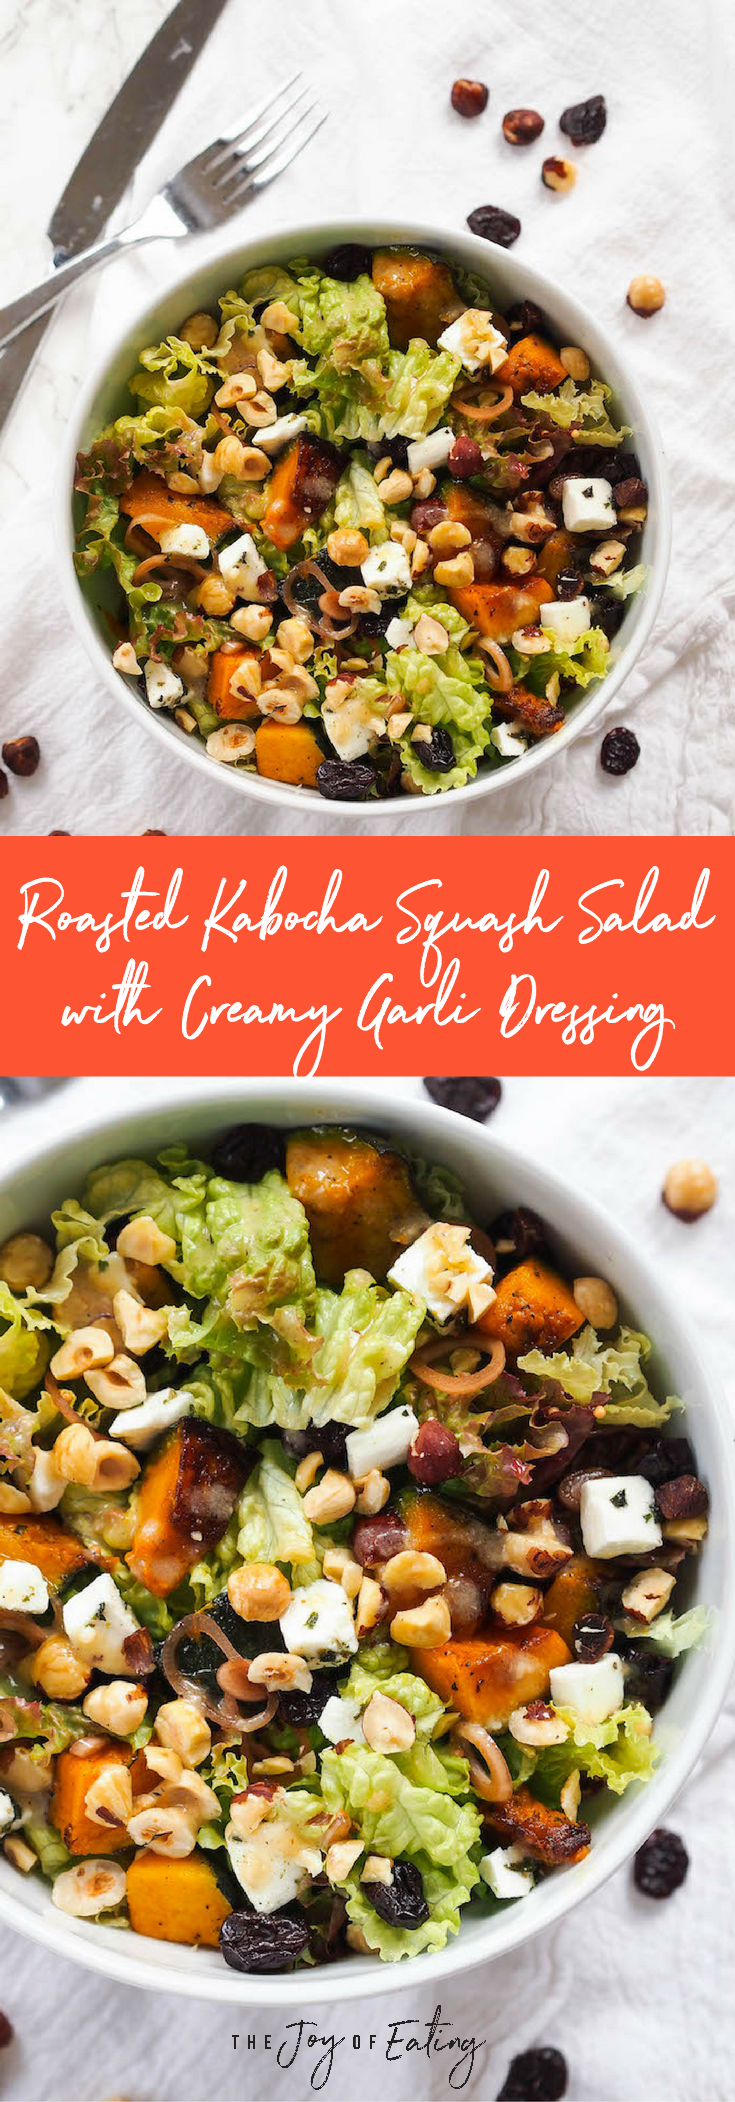 Roasted Kabocha Squash Salad.png